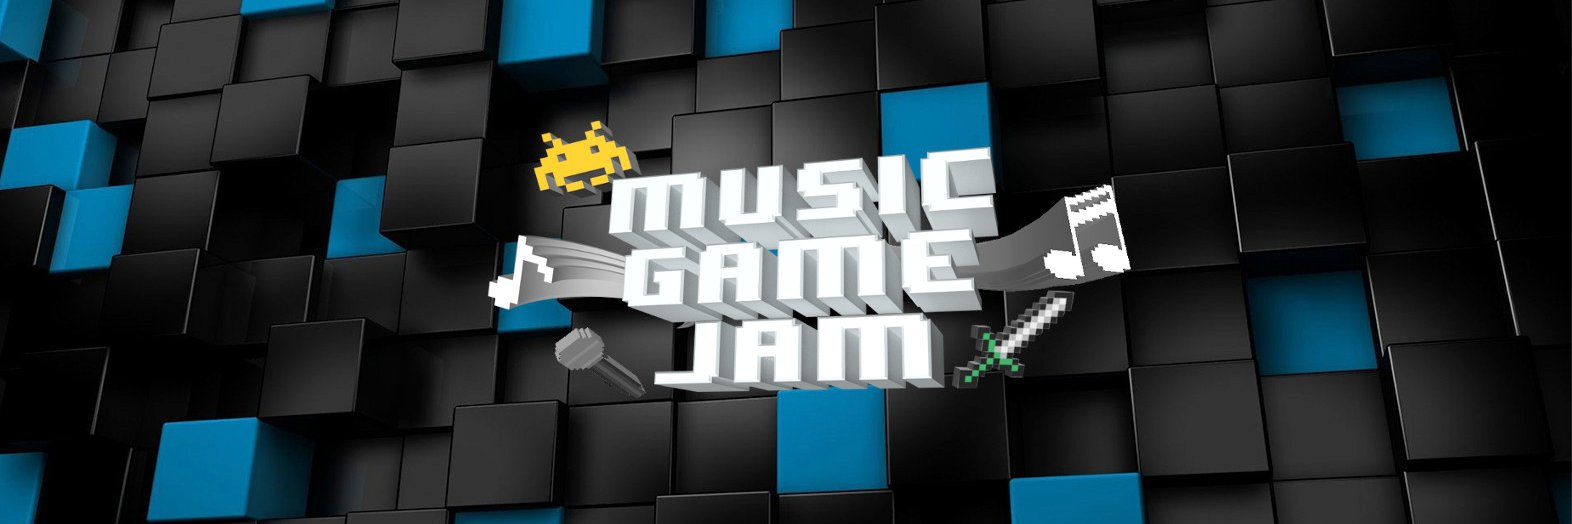 🎶 #MusicGameJam is officially over, with >90 ENTRIES! 🎶 A round of applause to all participants! 👏👏 Go play and r… https://t.co/qxwCTT126k